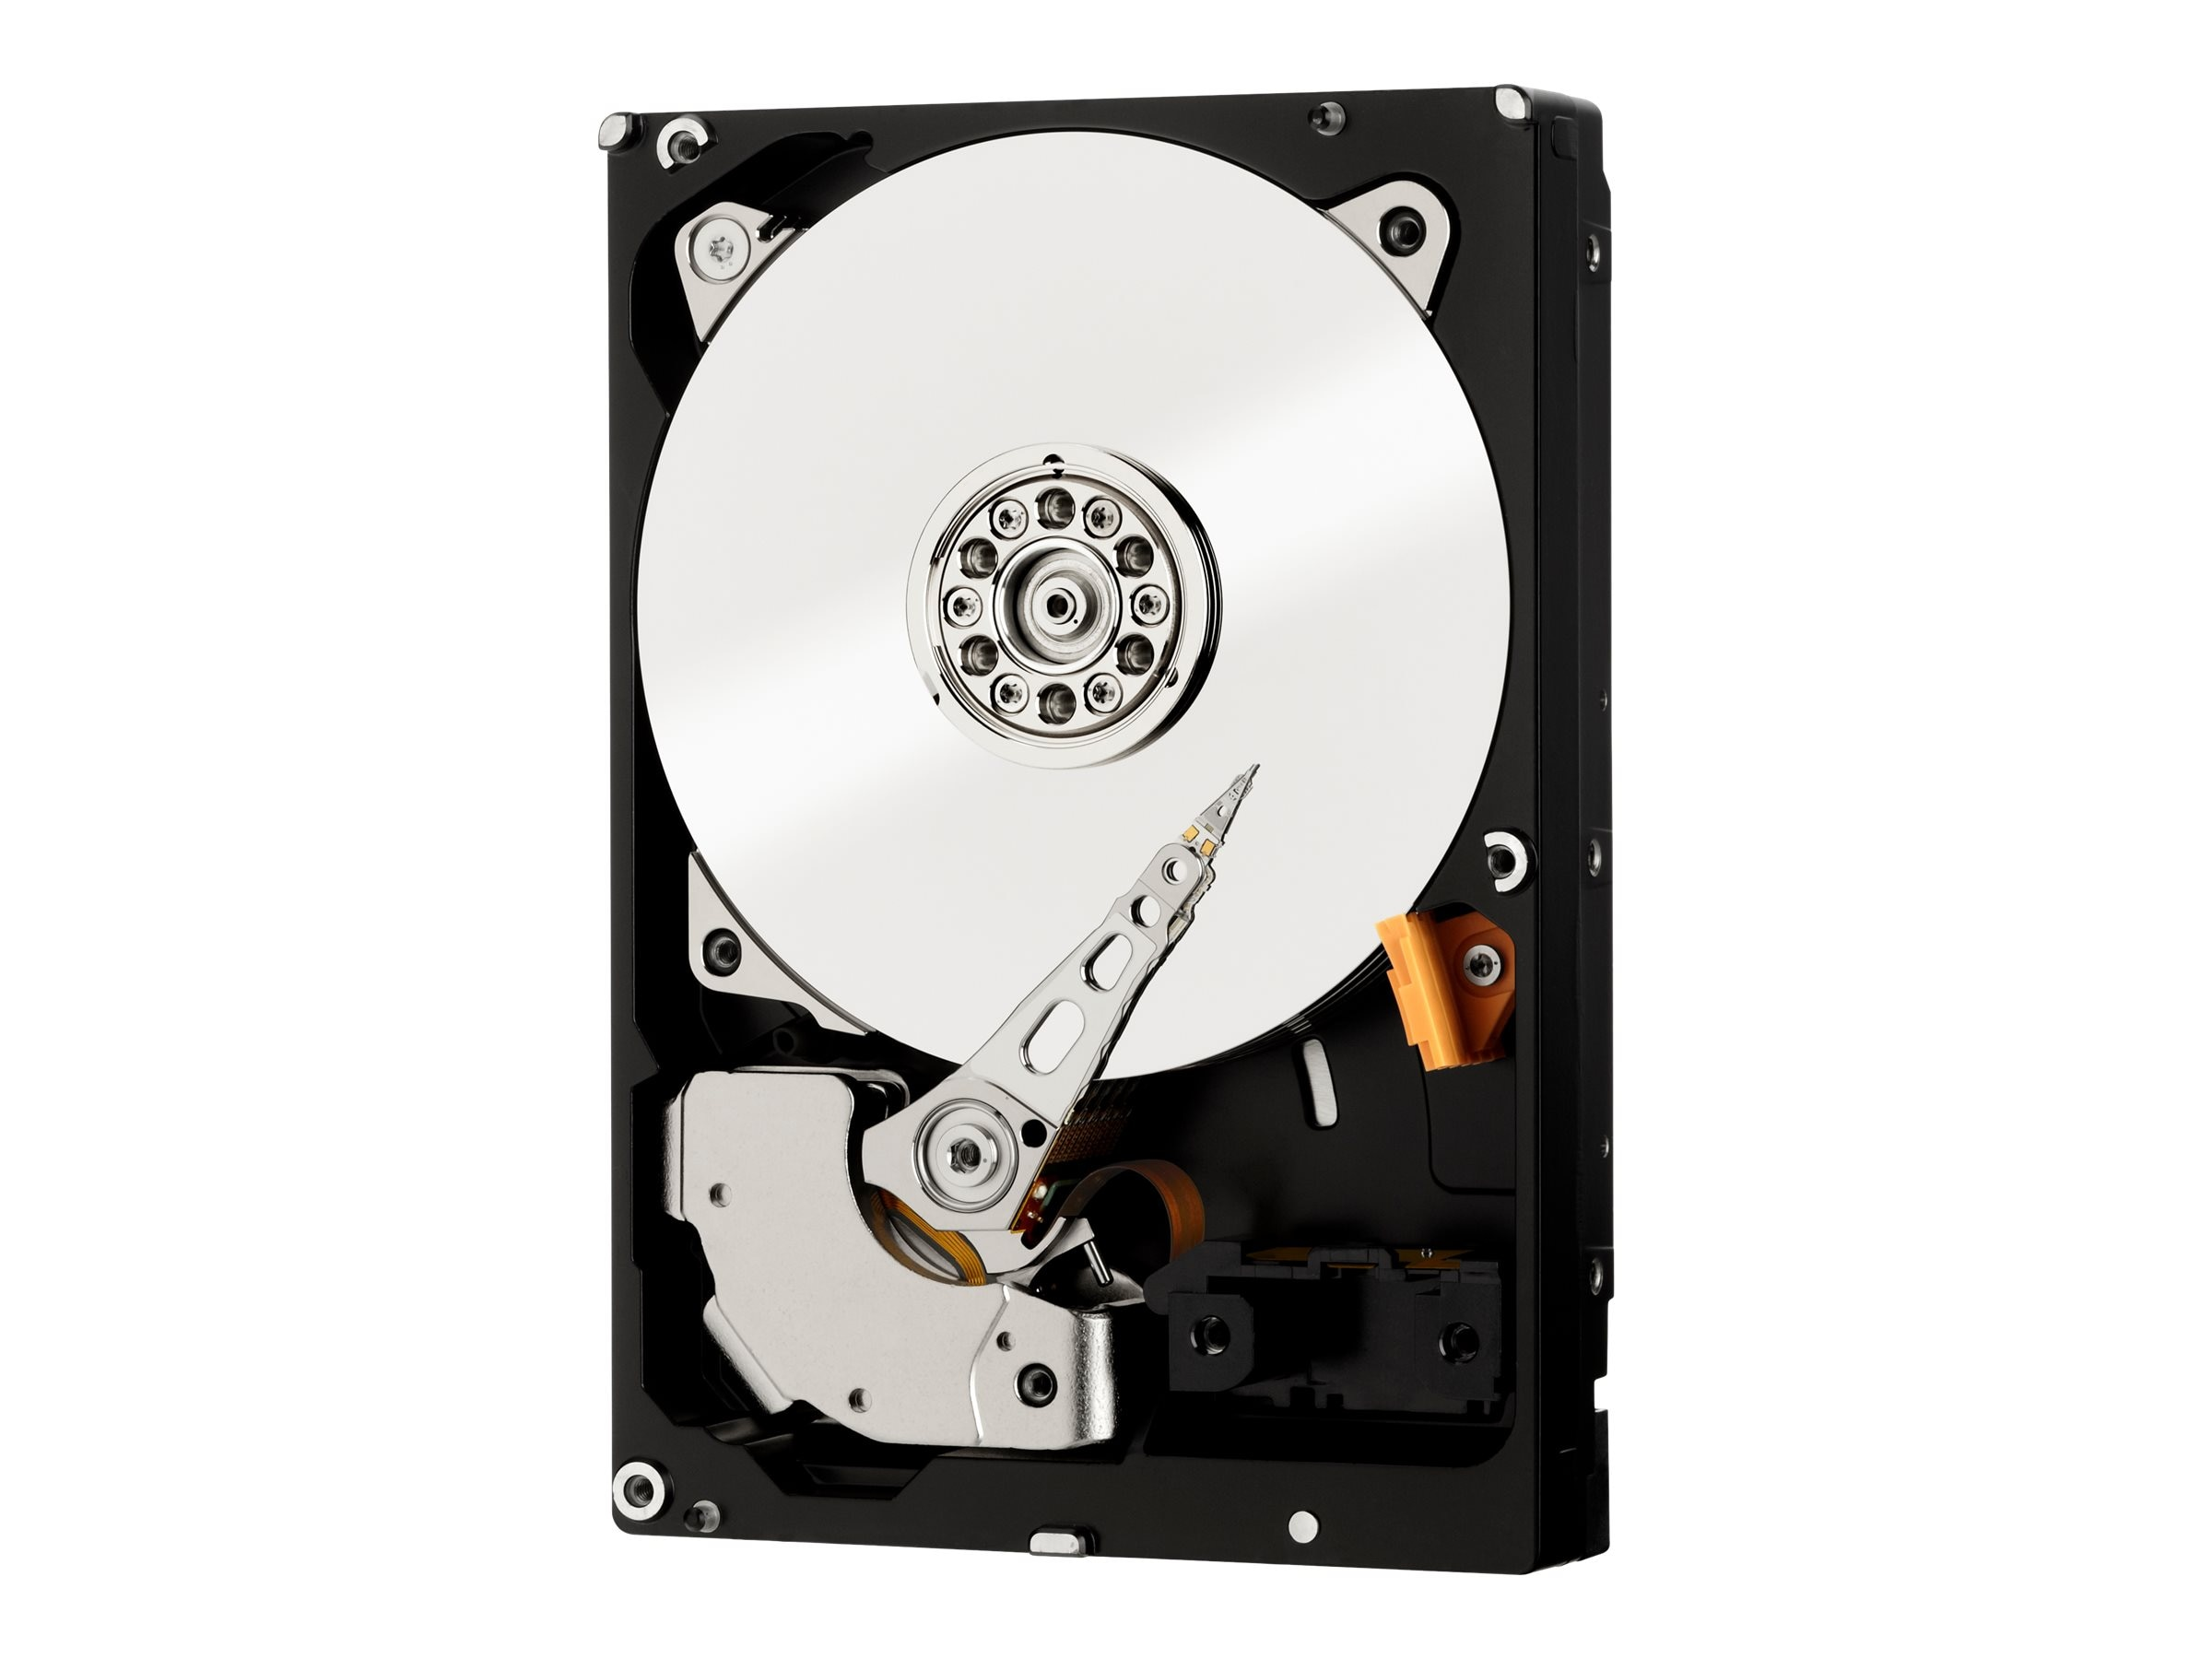 WD 5TB WD Re SATA 6Gb s 512e 3.5 Enterprise Hard Drive - 128MB Cache, WD5001FSYZ, 22706207, Hard Drives - Internal